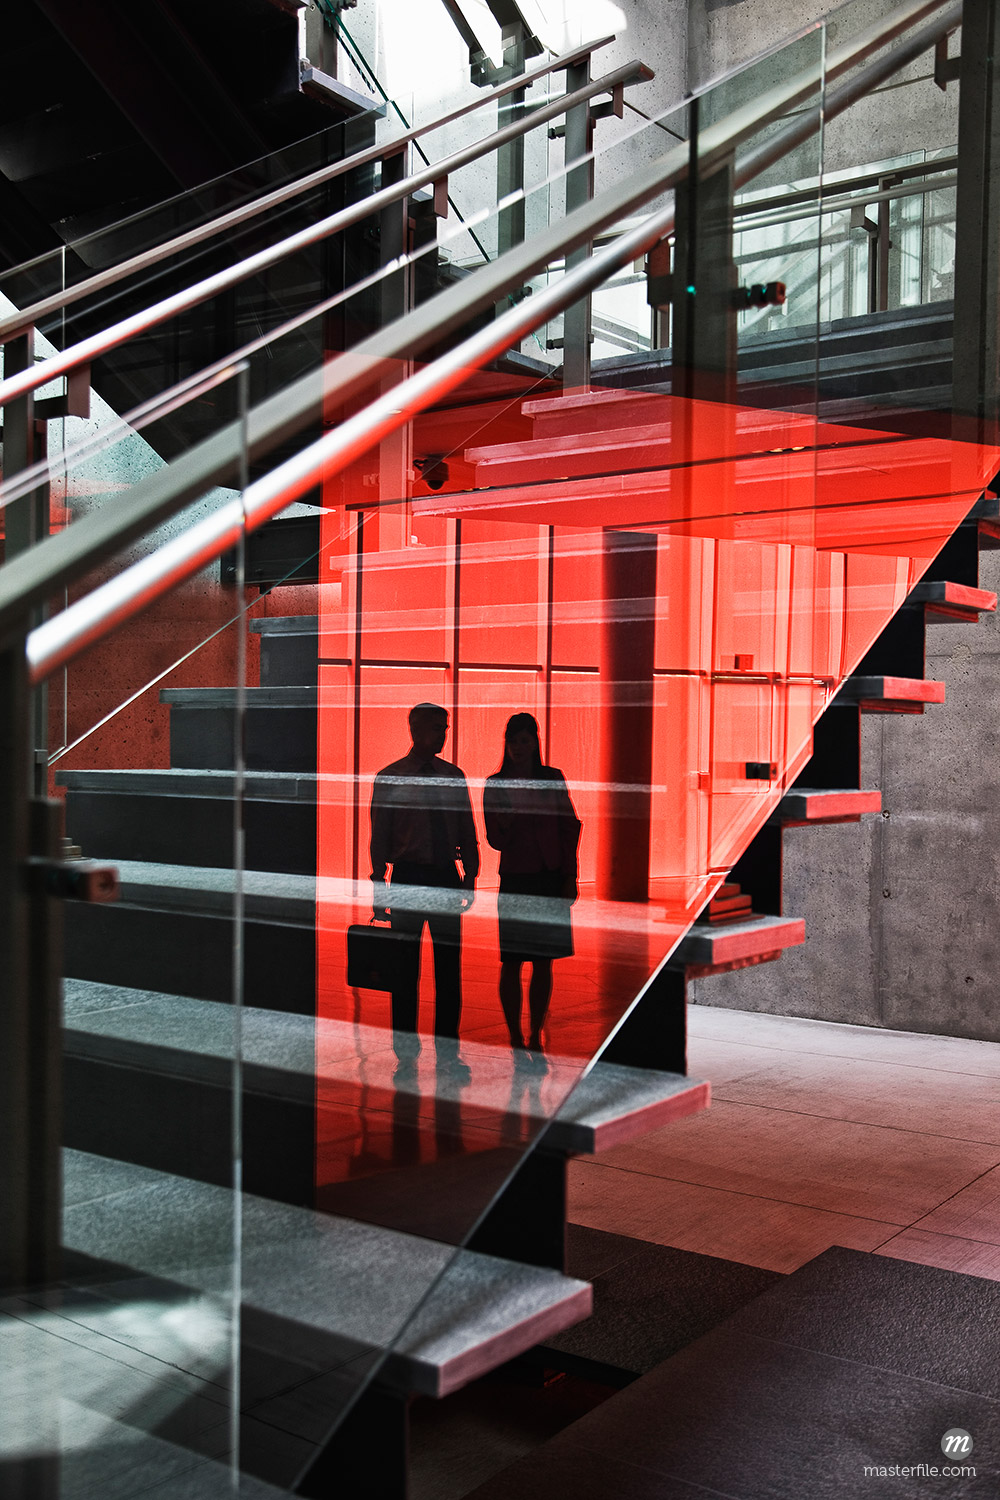 Two businesspeople silhouetted in reflections on the glass around a stairwell of a large office building © Masterfile